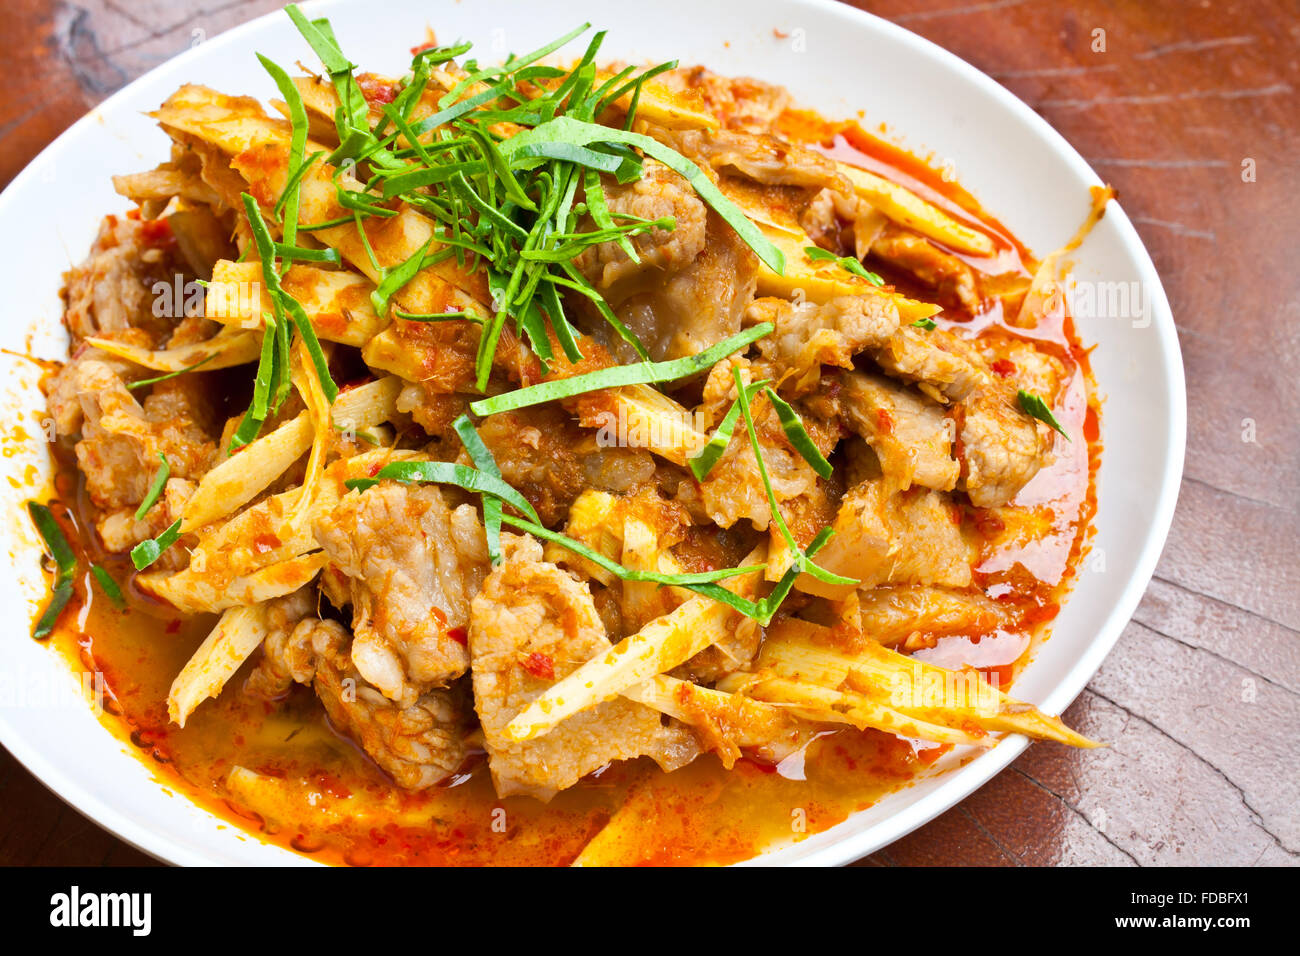 Stir Fried Pork Belly with Red Curry Paste and Bamboo Shoots - Stock Image